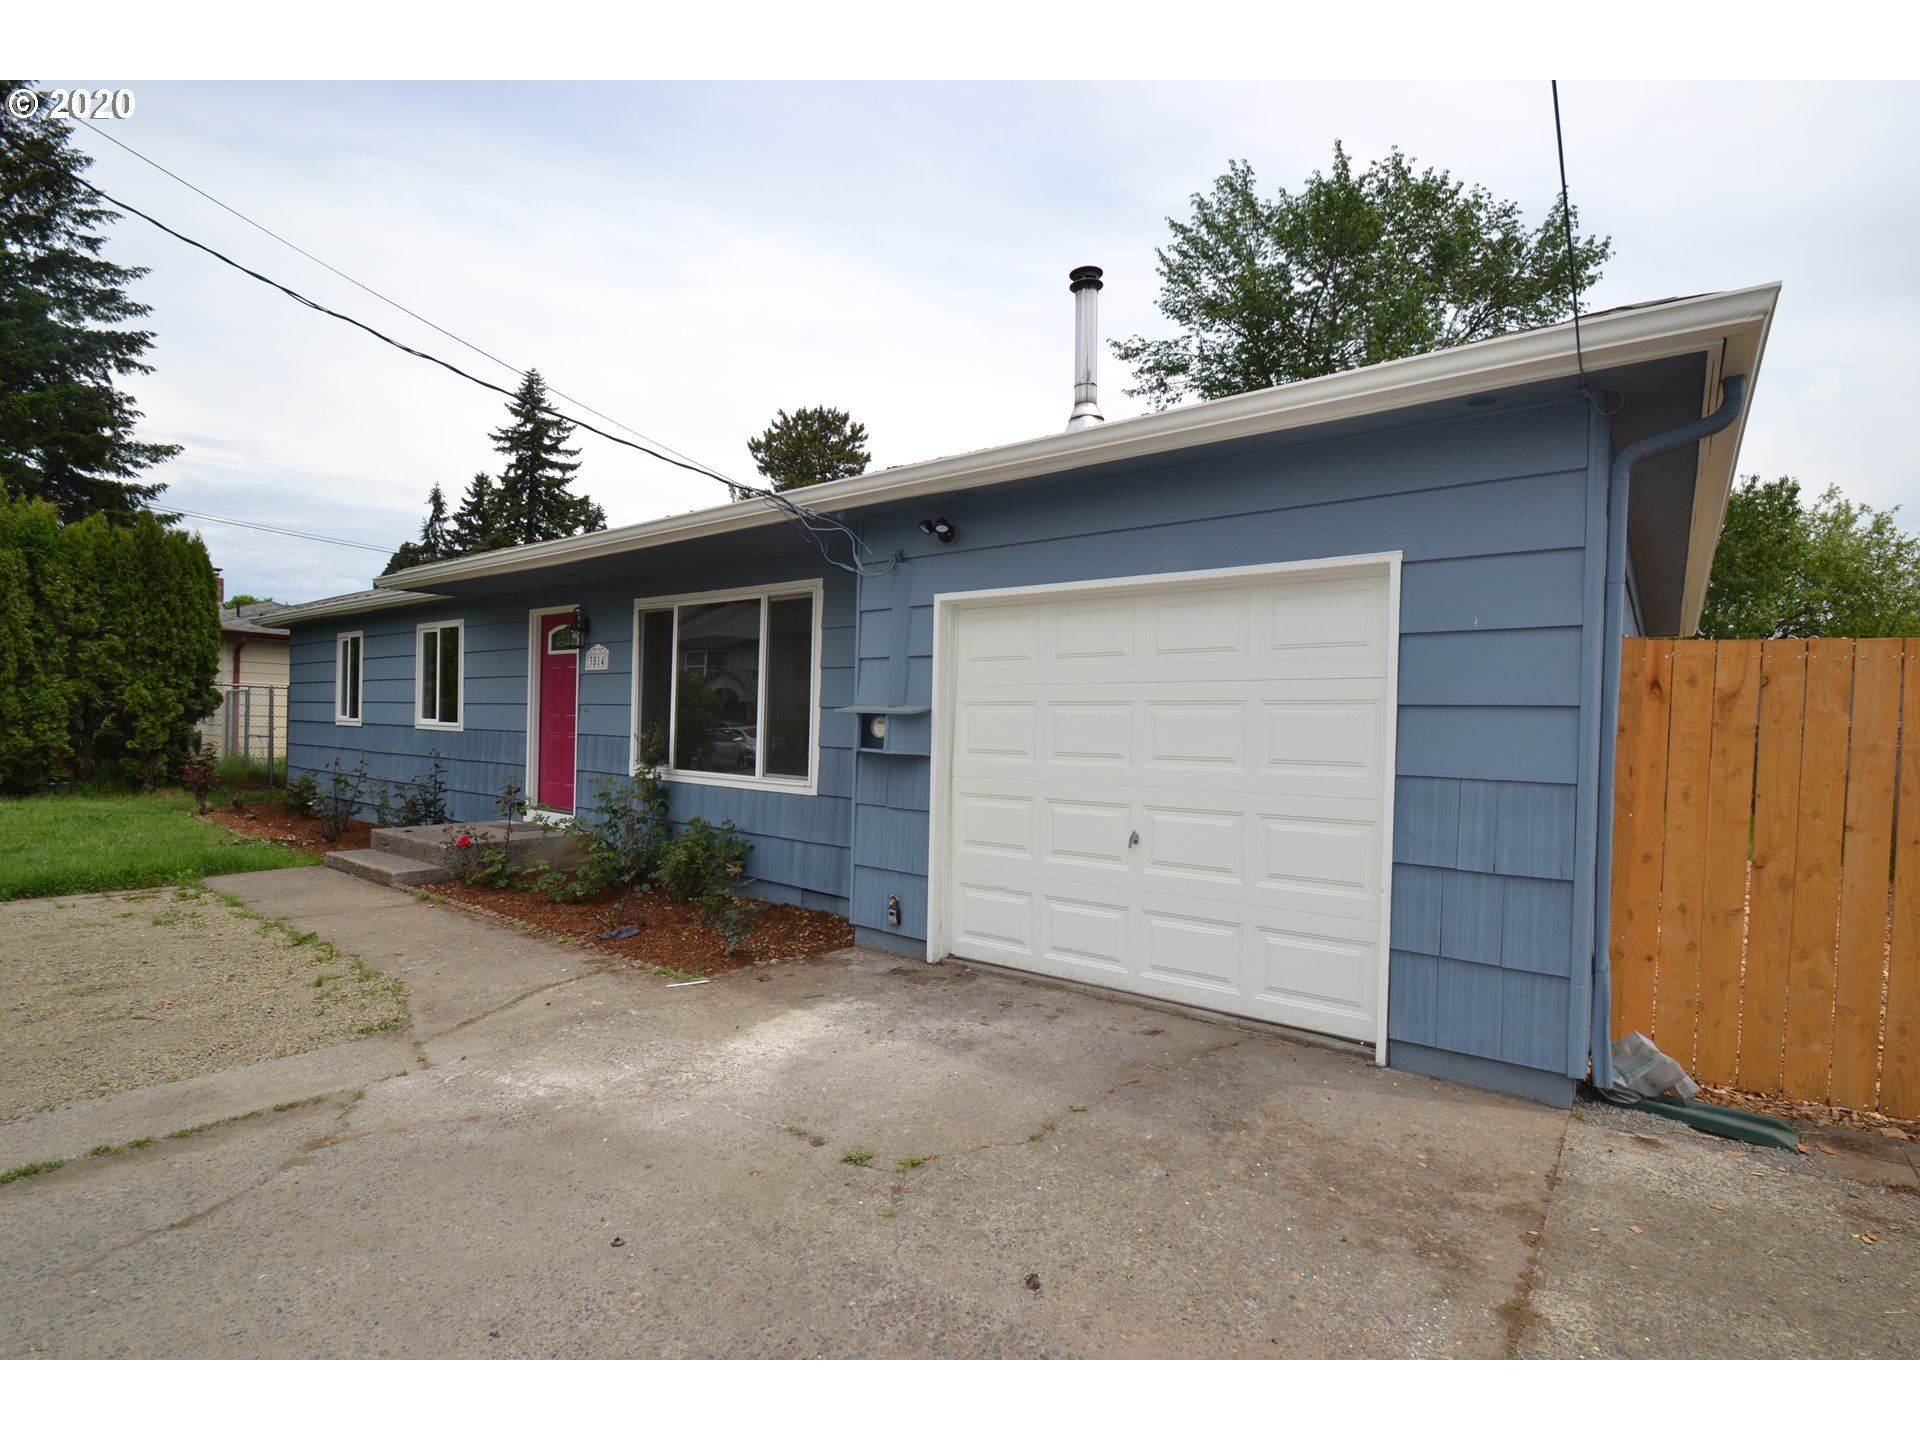 3514 SE 132ND AVE, Portland, OR 97236 - MLS#: 20649275